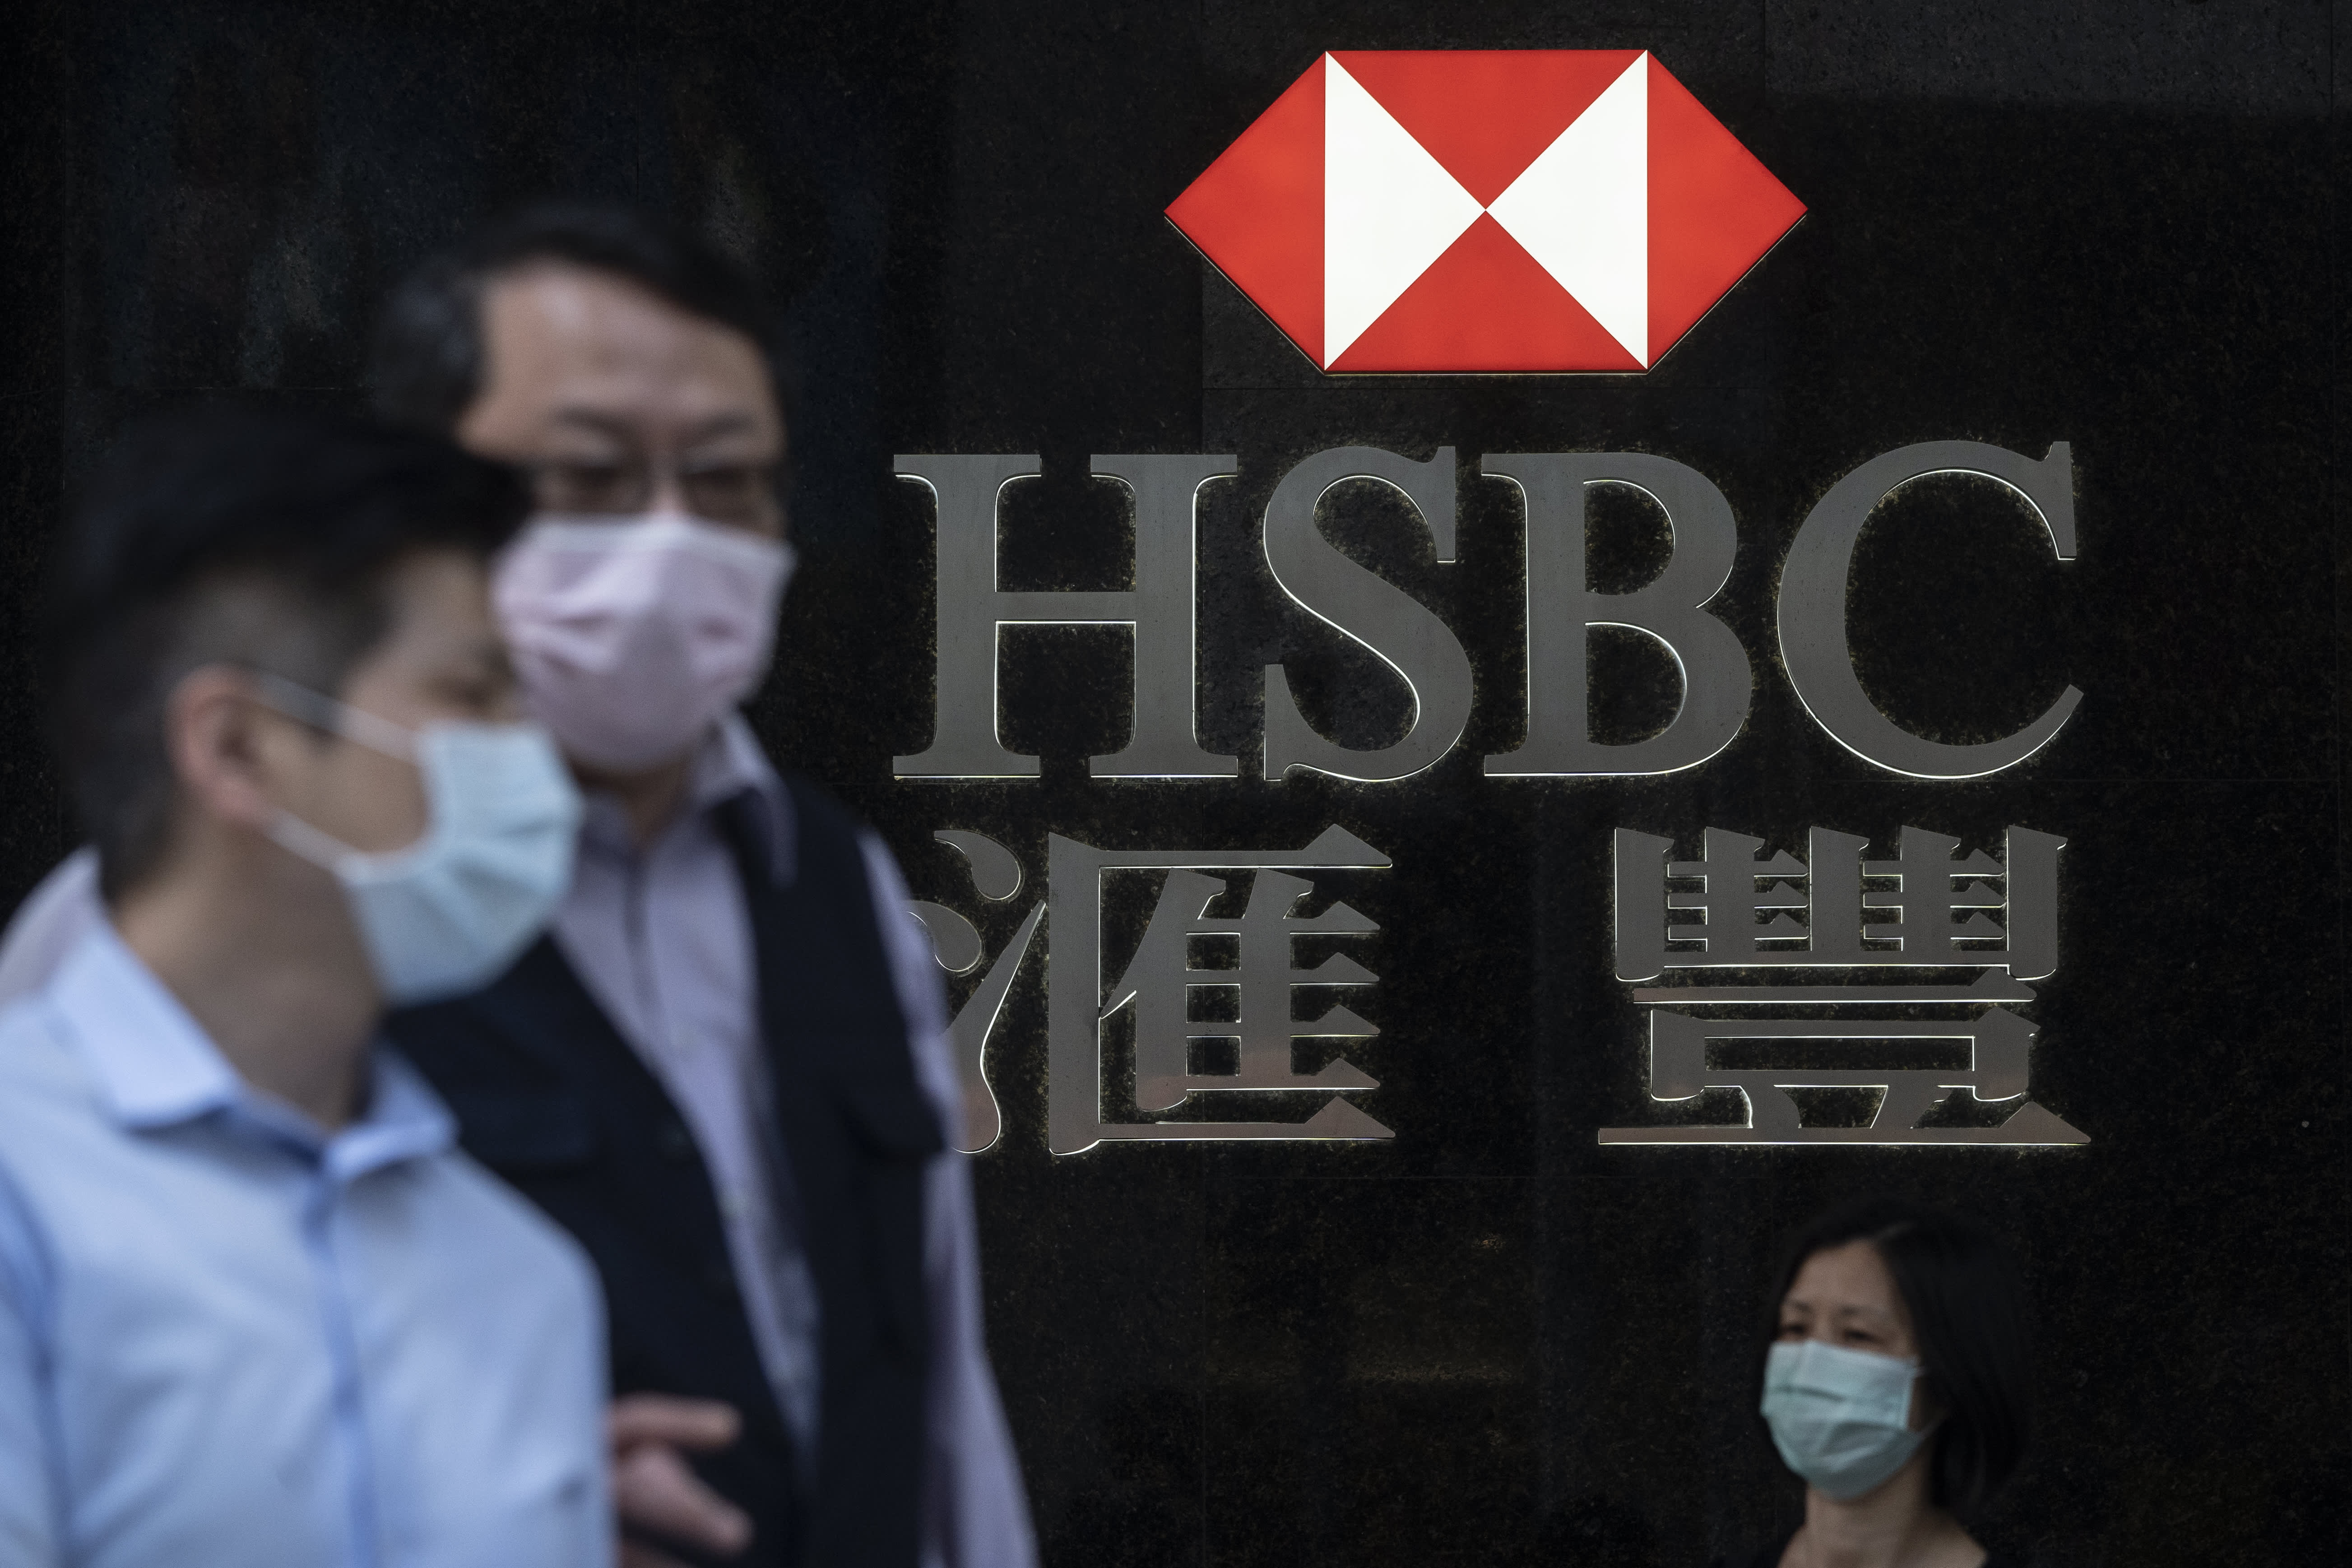 HSBC's reported pre-tax profit more than doubles to .8 billion in first half of 2021